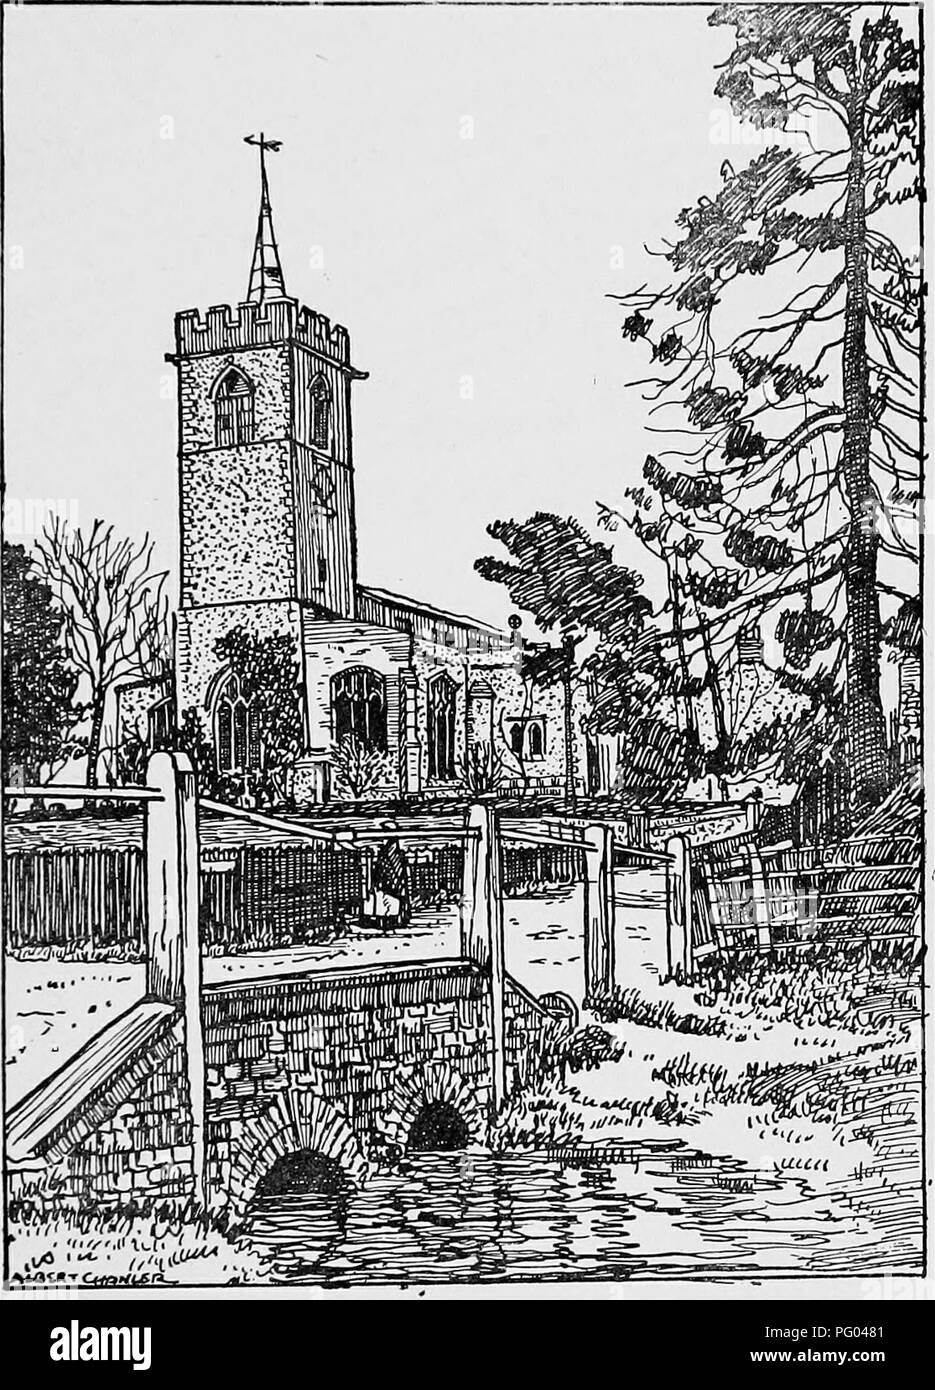 . The Victoria history of the county of Hertford. Natural history. EDWINSTREE HUNDRED FURNEUX PELHAM stonework is defaced. In the south-east angle is a hollow-chamfered four-centred doorway to the rood stair, which still exists, as does also the upper doorway to the loft. In the south wall of the eastern respond of the arcade is a i jth-century piscina with cinque- foiled arch, continuously moulded, with stopped jambs.'° The head is square and the spandrels are carved with roses and cusping. The south aisle has two windows in the south wall and one window of three lights in the west wall, all  - Stock Image